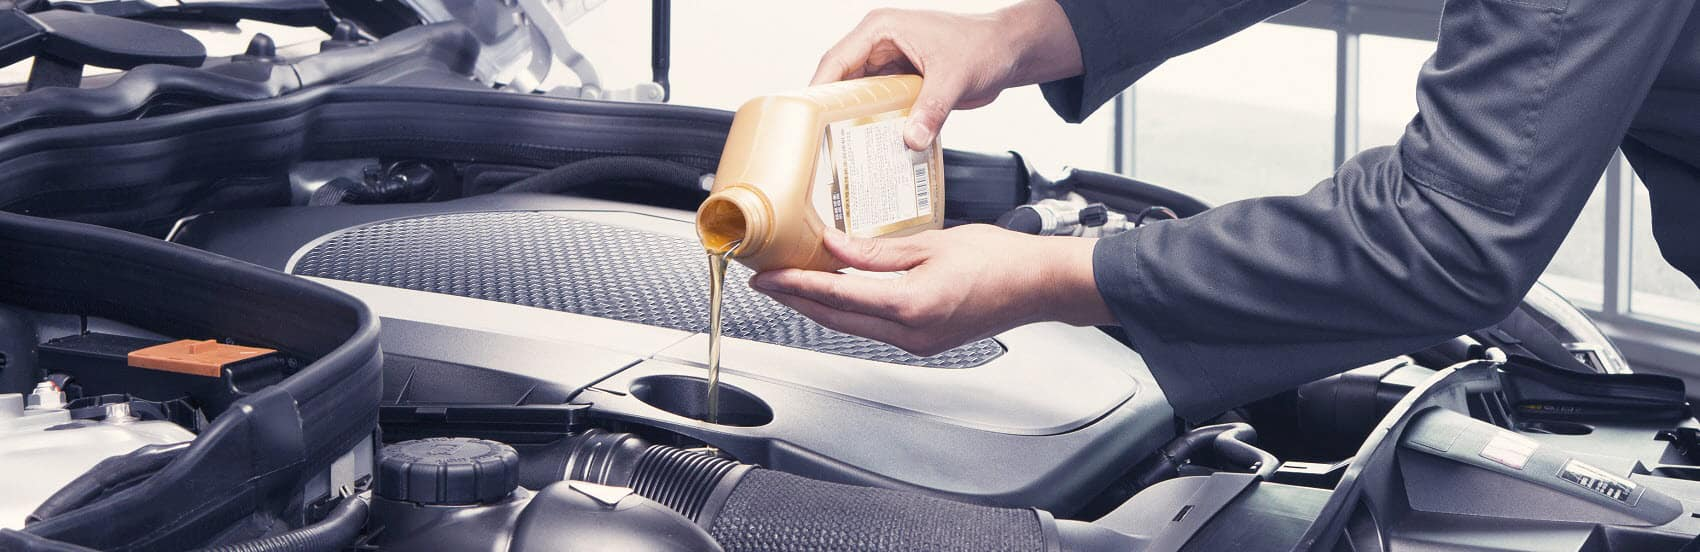 Oil Change near Me | Boerne, TX